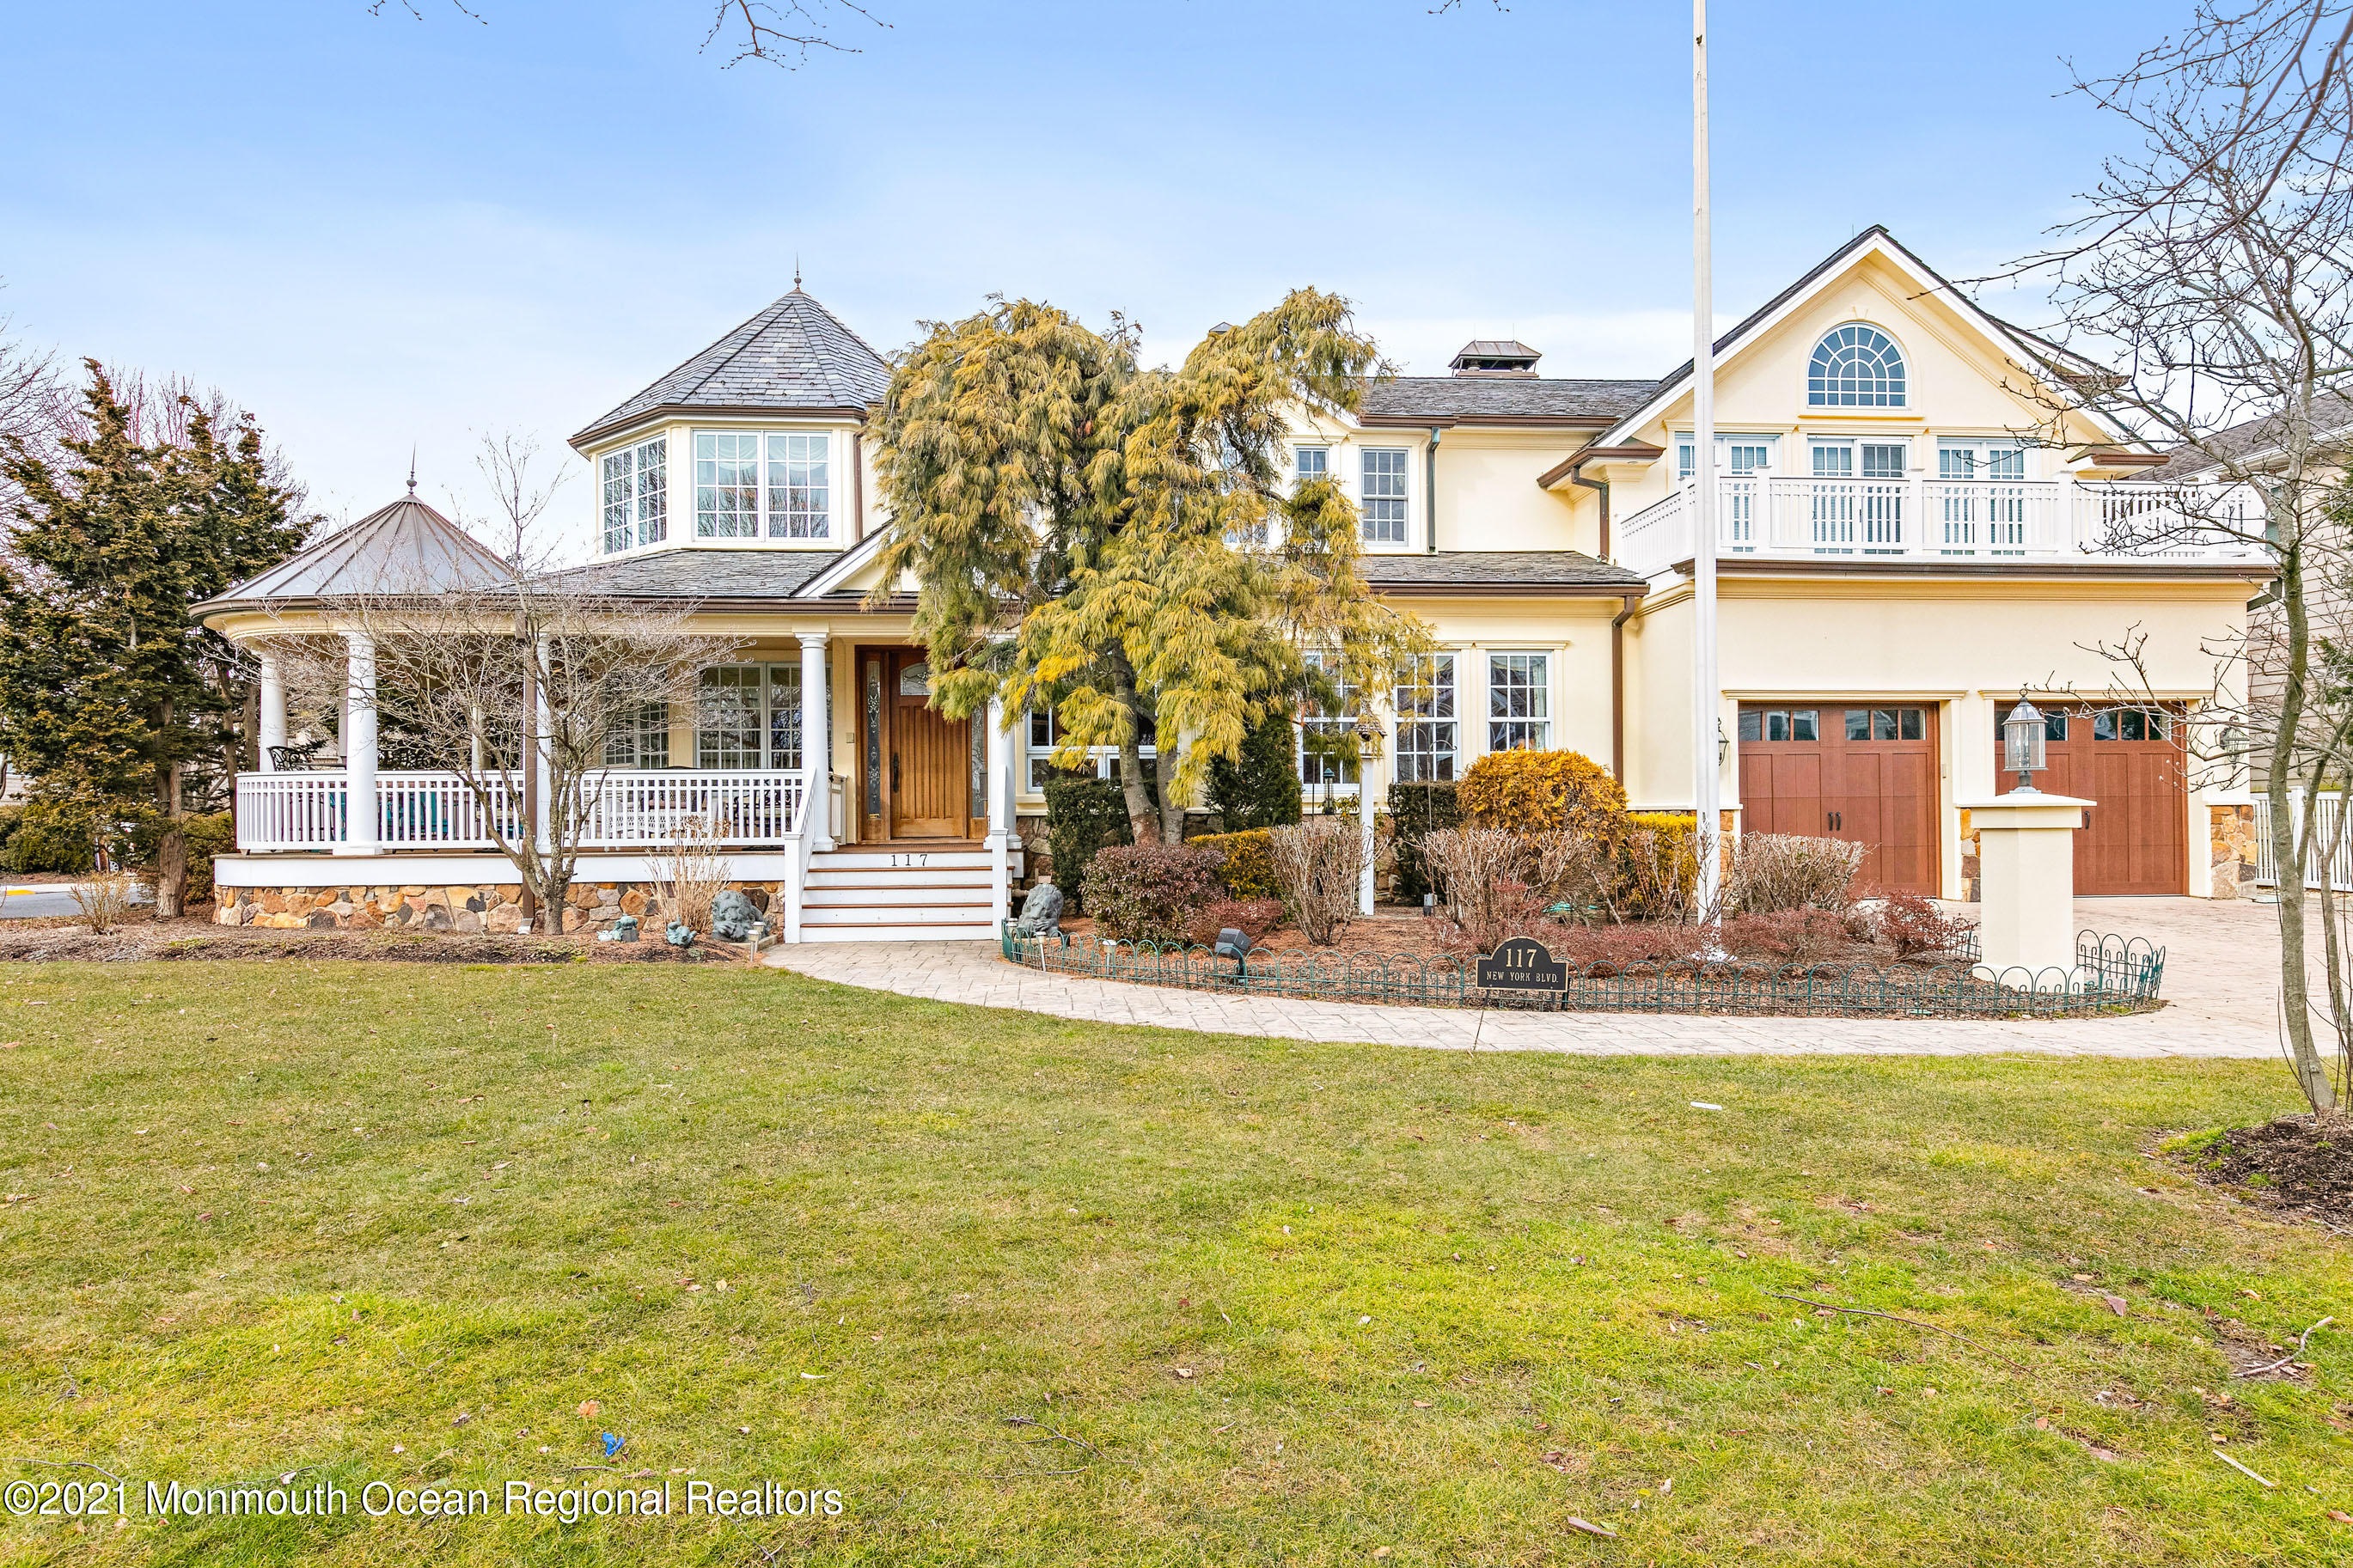 Photo of 117 New York Boulevard, Sea Girt, NJ 08750